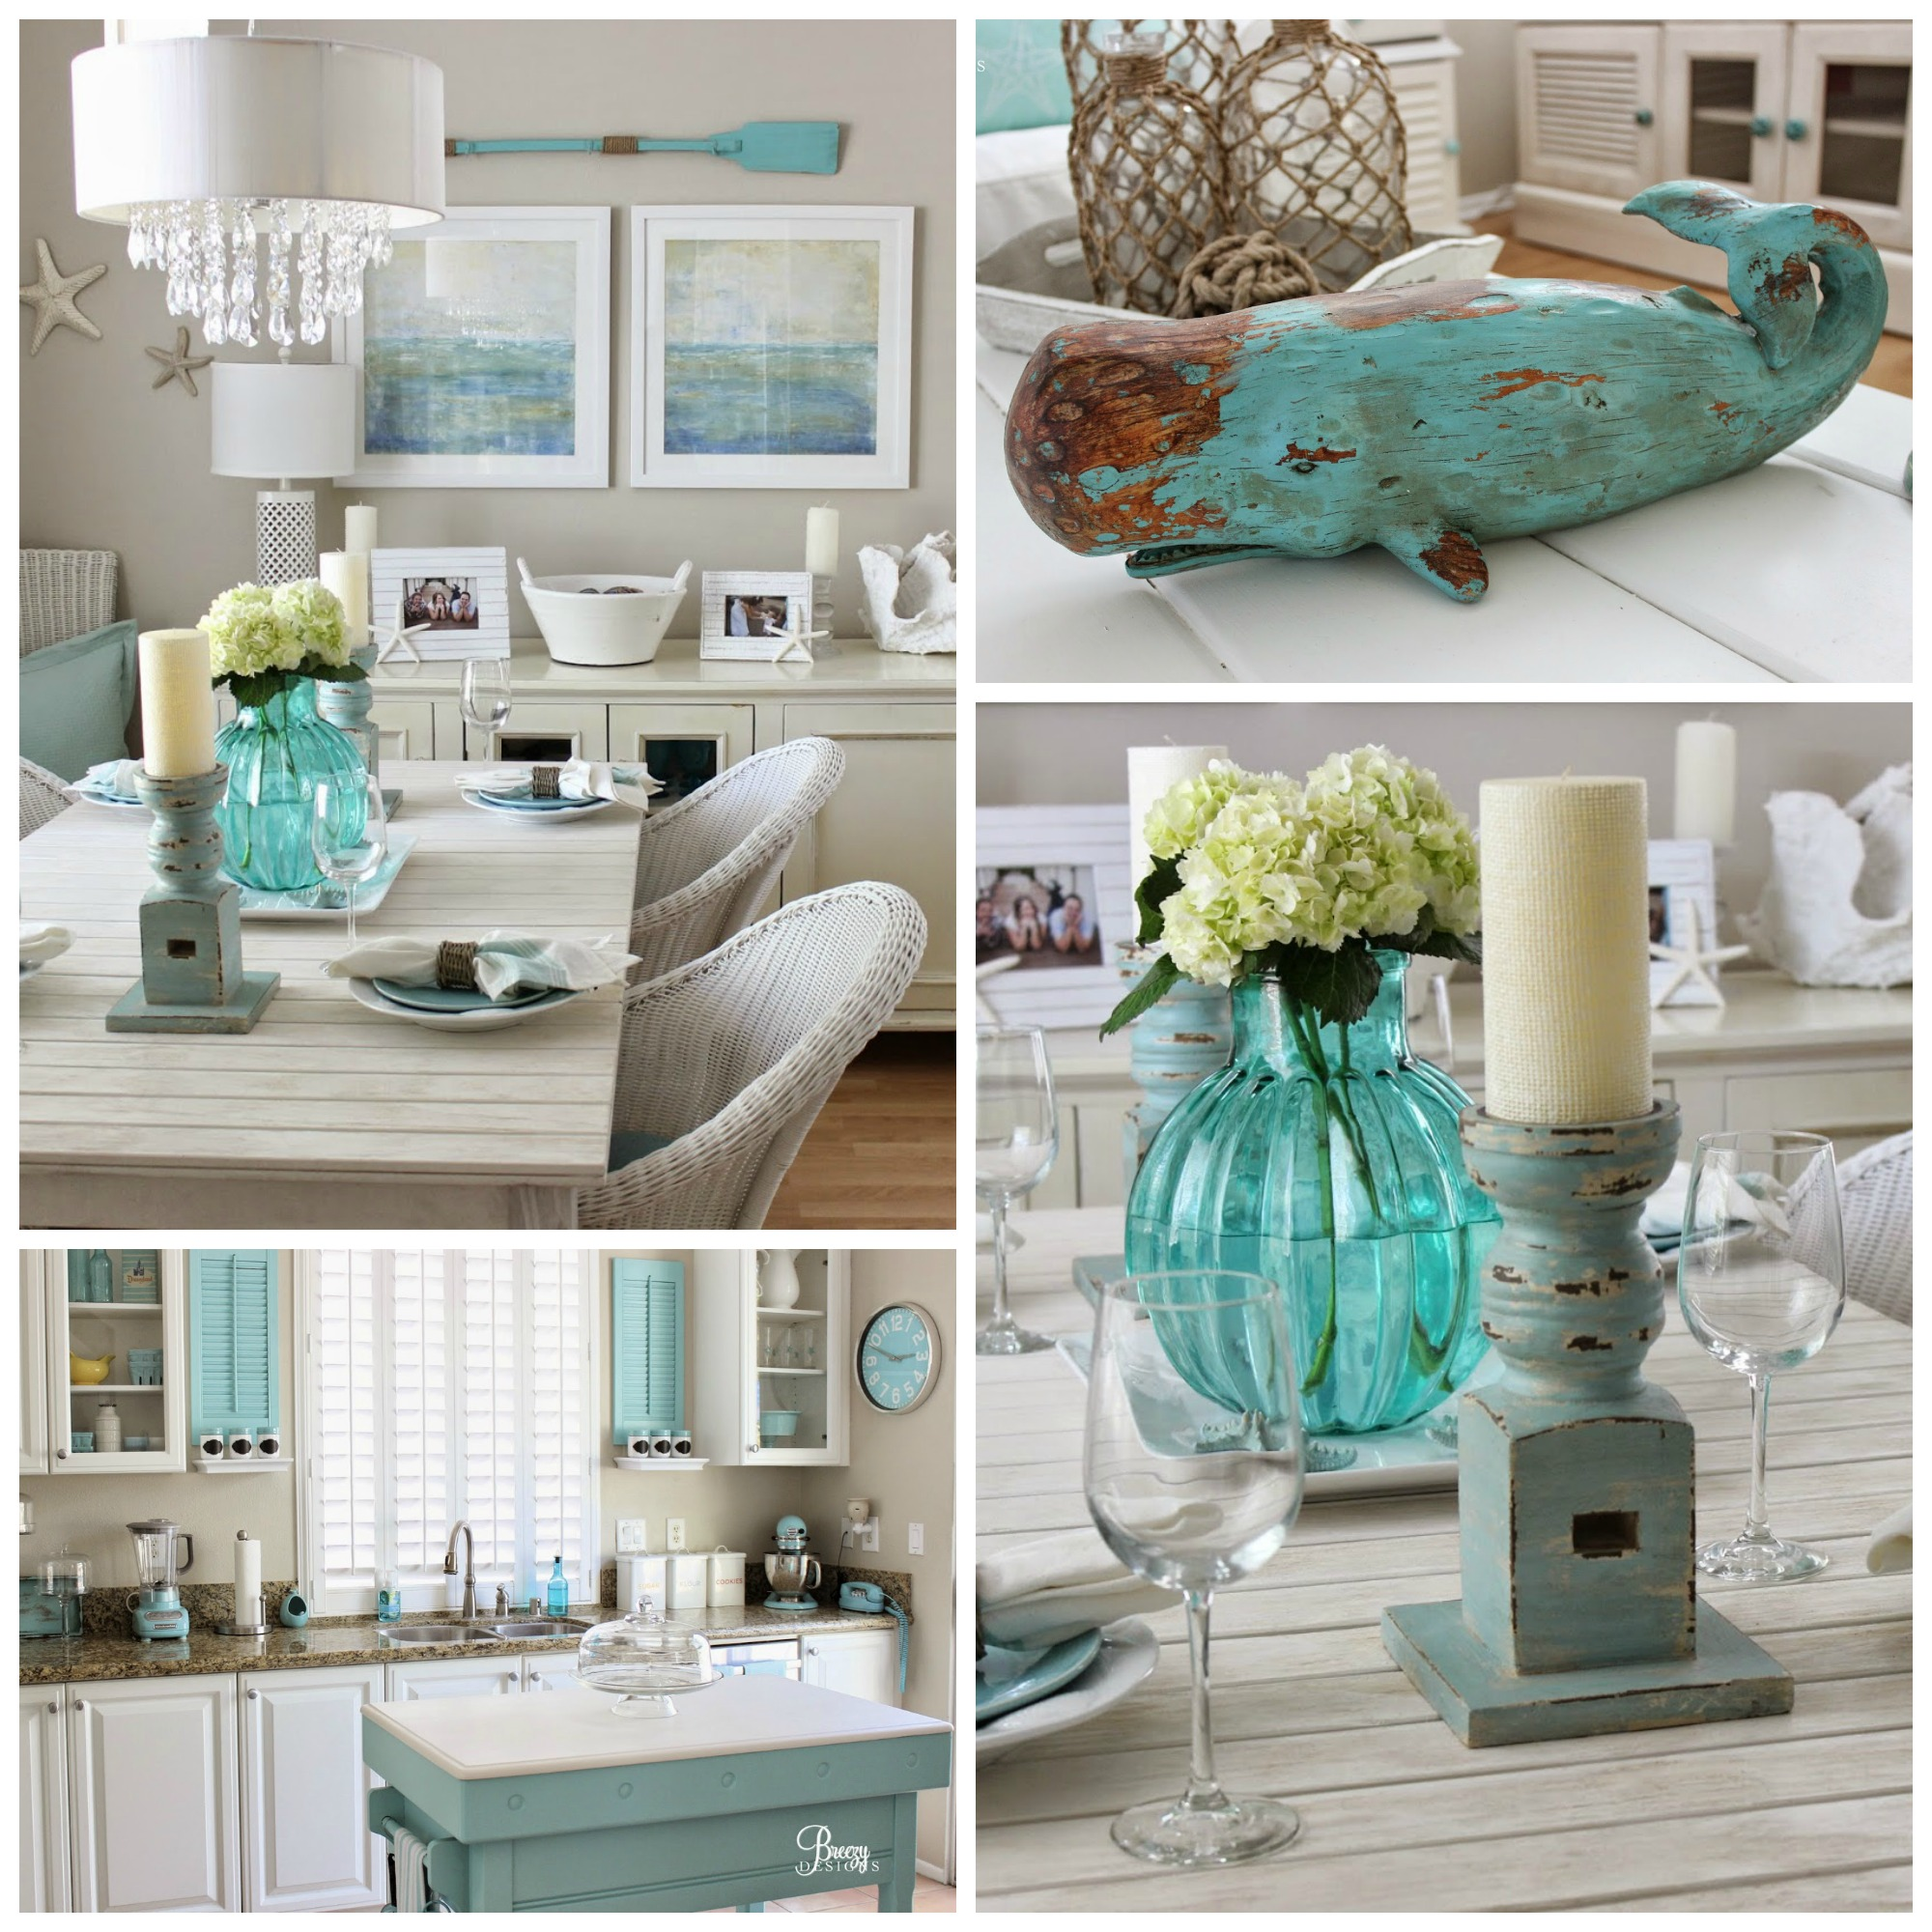 Beach chic coastal cottage home tour with breezy design for Home dekoration